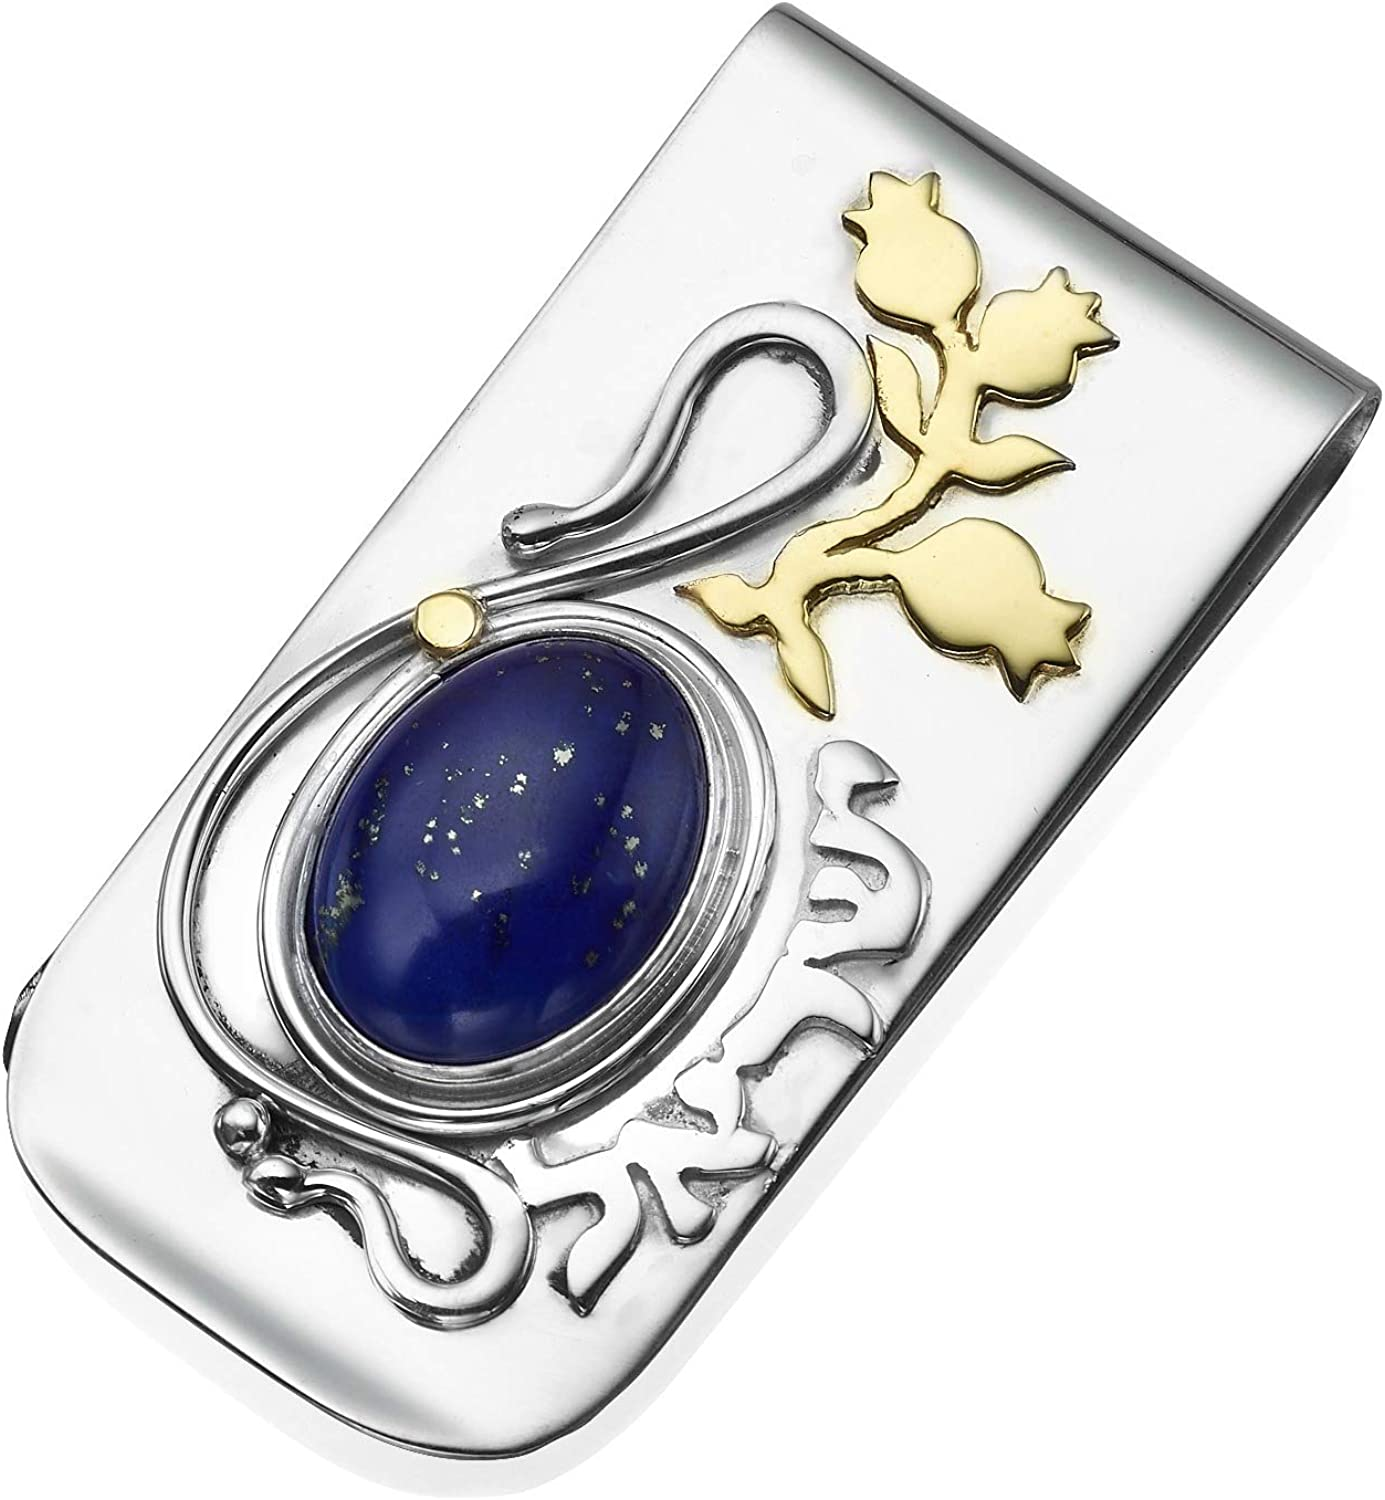 Baltinester Sterling Silver and 14k Gold Blue Lapis Lazuli Money Clip Israeli Gift for Men 583921012